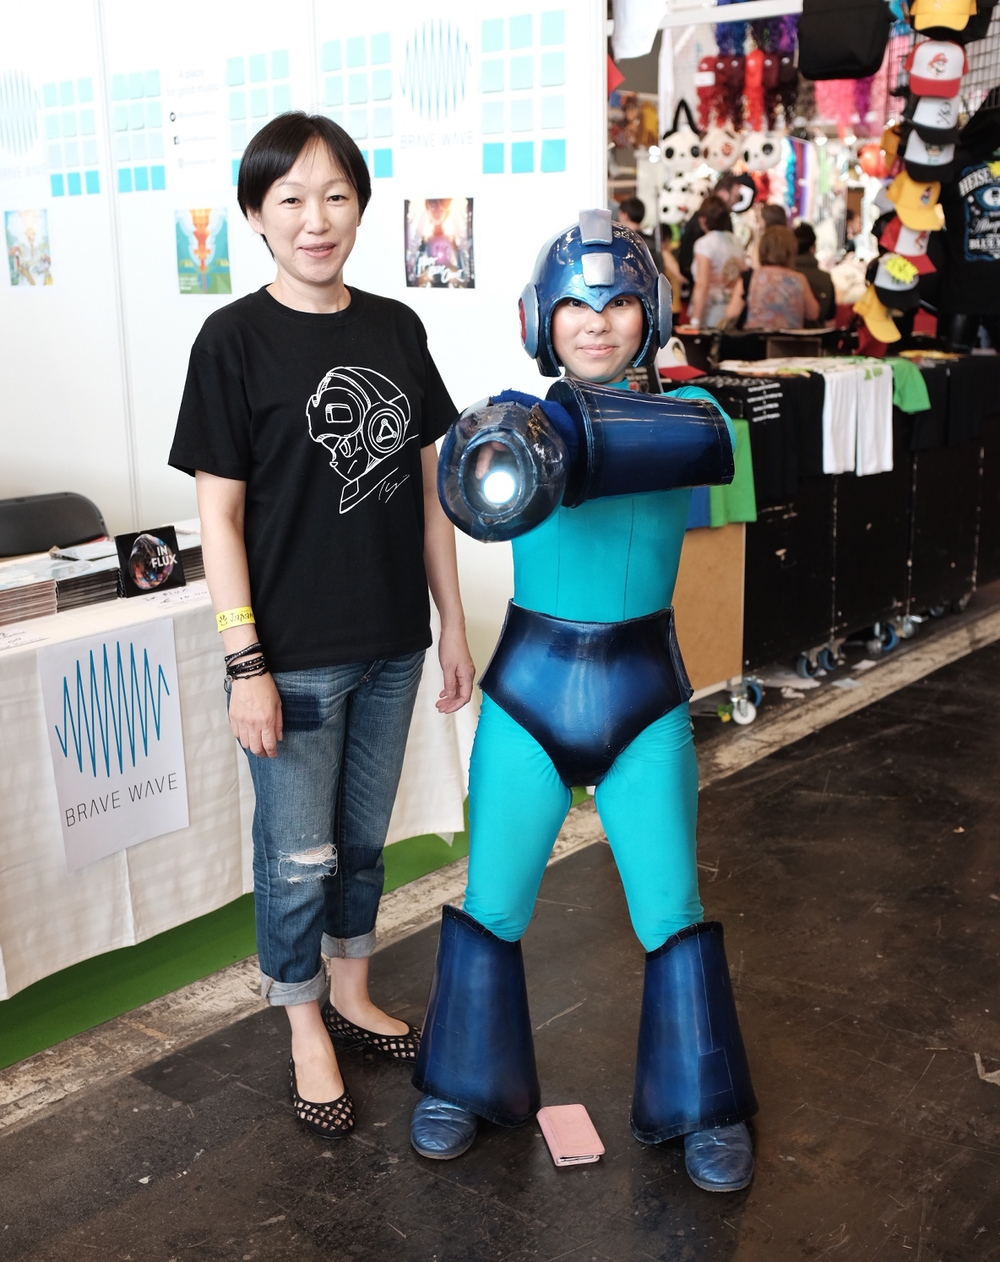 Manami Matsumae attended Japan Expo 2015 in Paris. She is pictured on the left alongside Saitama, Japan-based video game cosplayer, Fujihime.